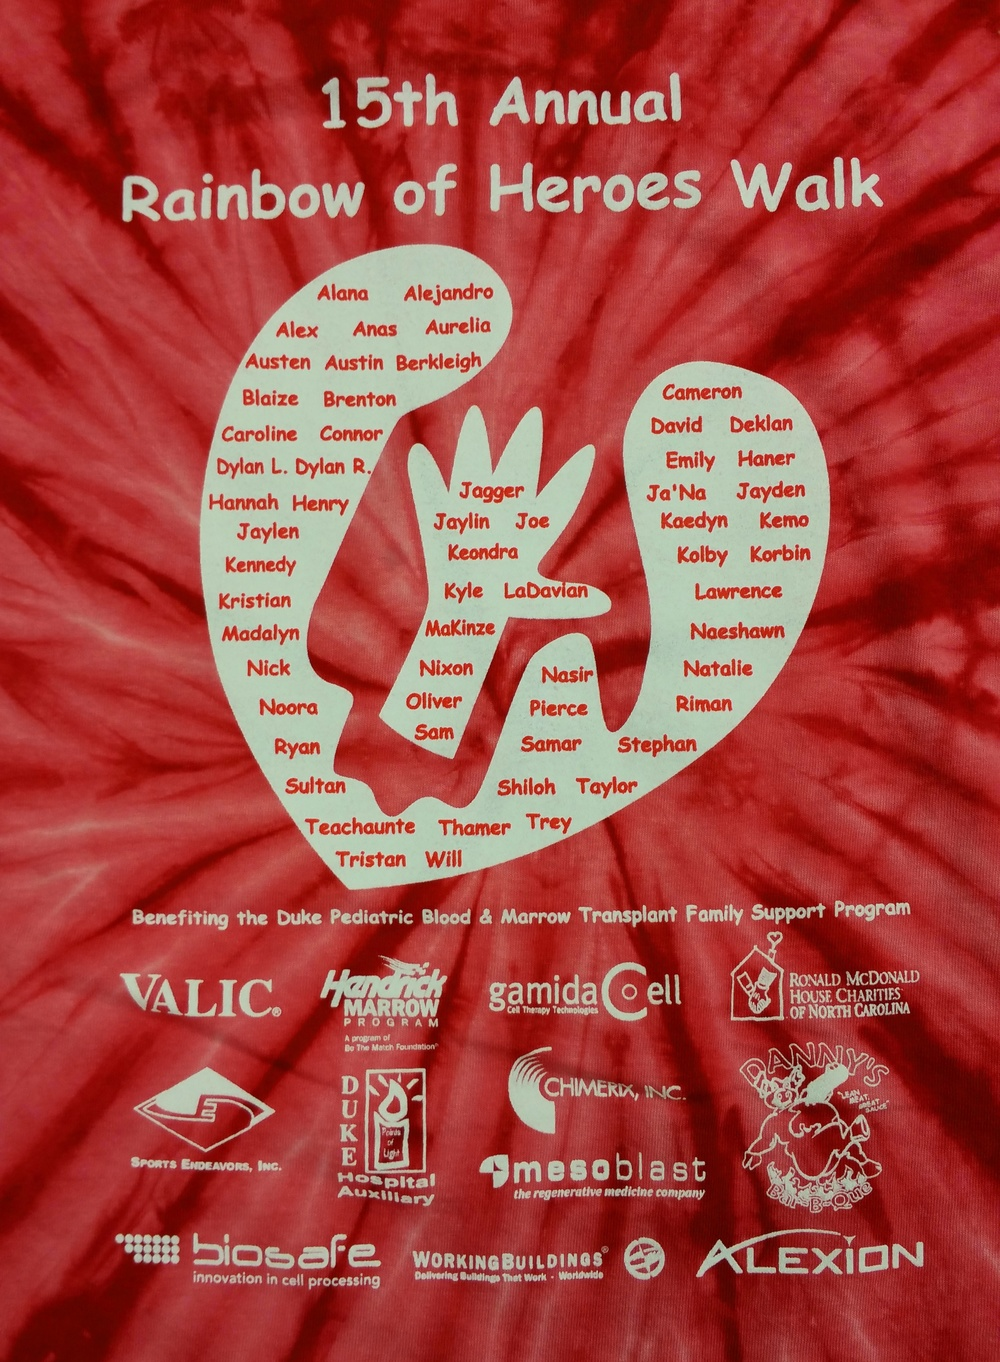 The 2015 Rainbow of Heroes Walk T-shirt! Email Scott Mofield at scott.mofield@duke.edu if you will not be at the Walk and would like to order one.